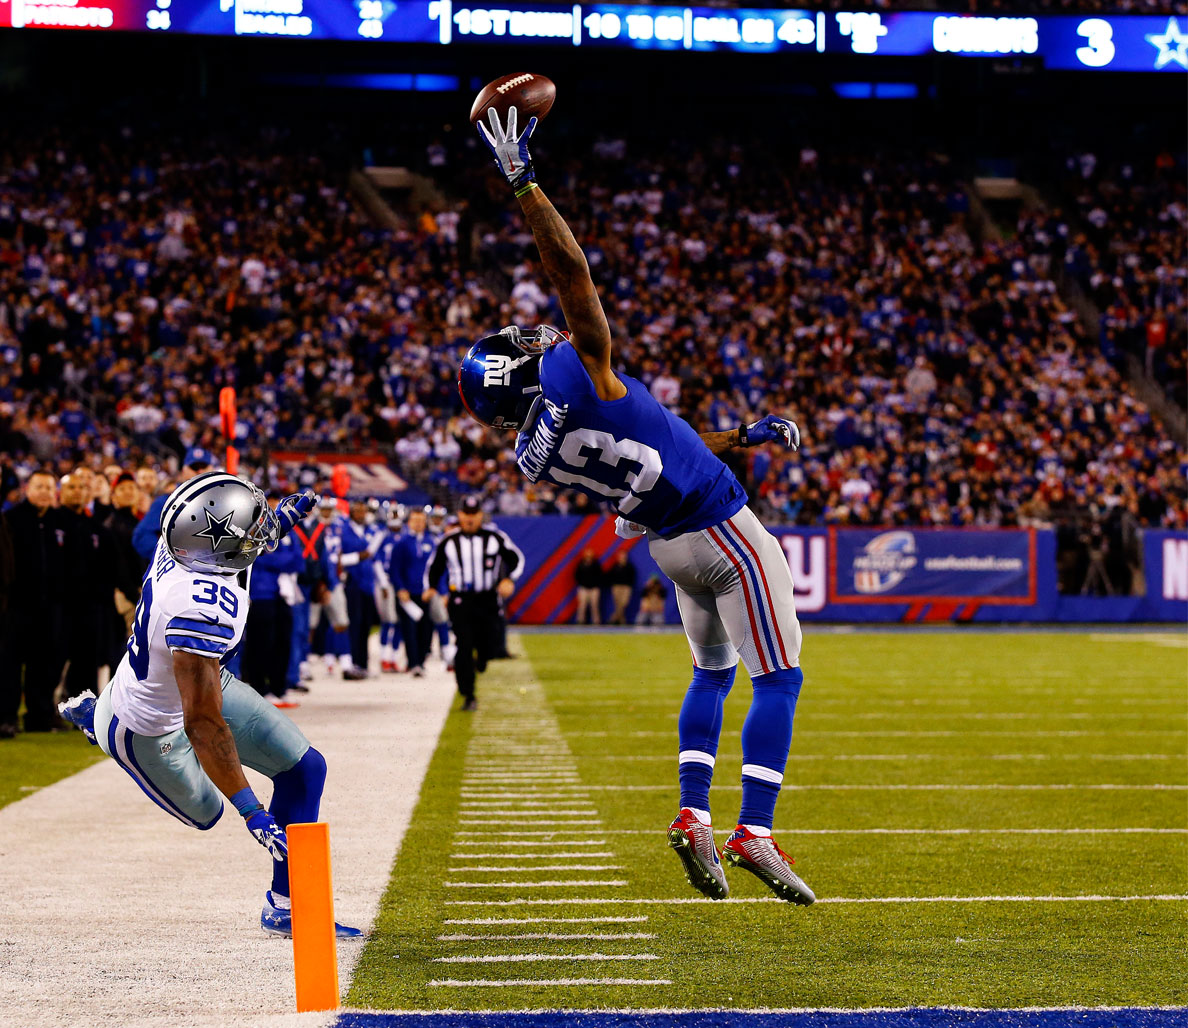 Pictured:  Odell Beckham Jr. (New York Giants WR),  Photo:  GETTY IMAGES